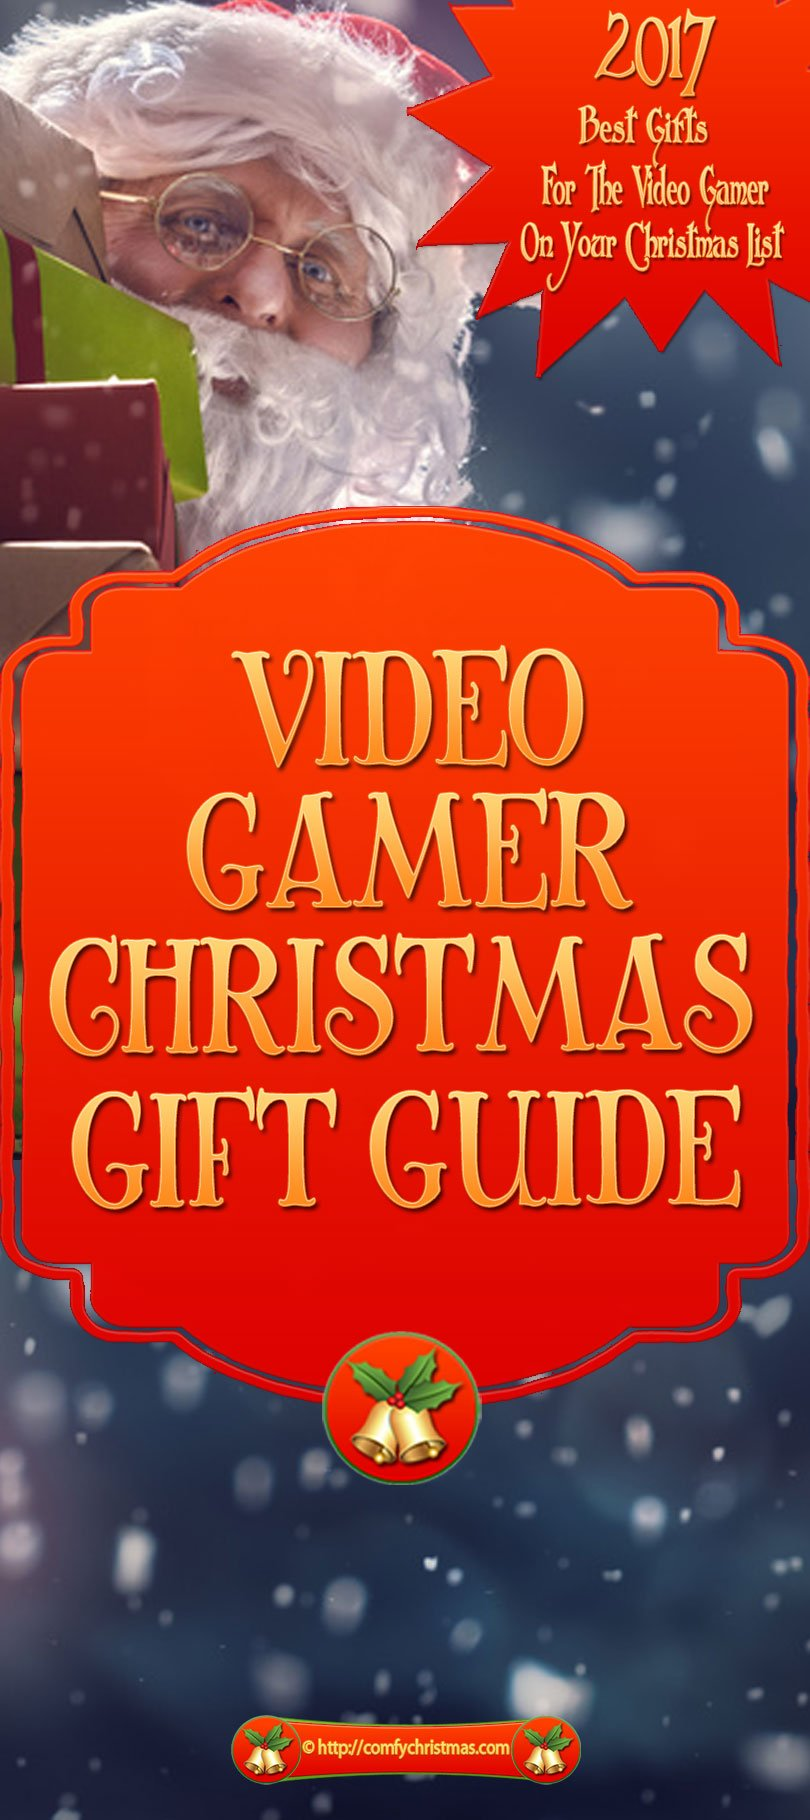 Video Gamer Gifts Guide 2017